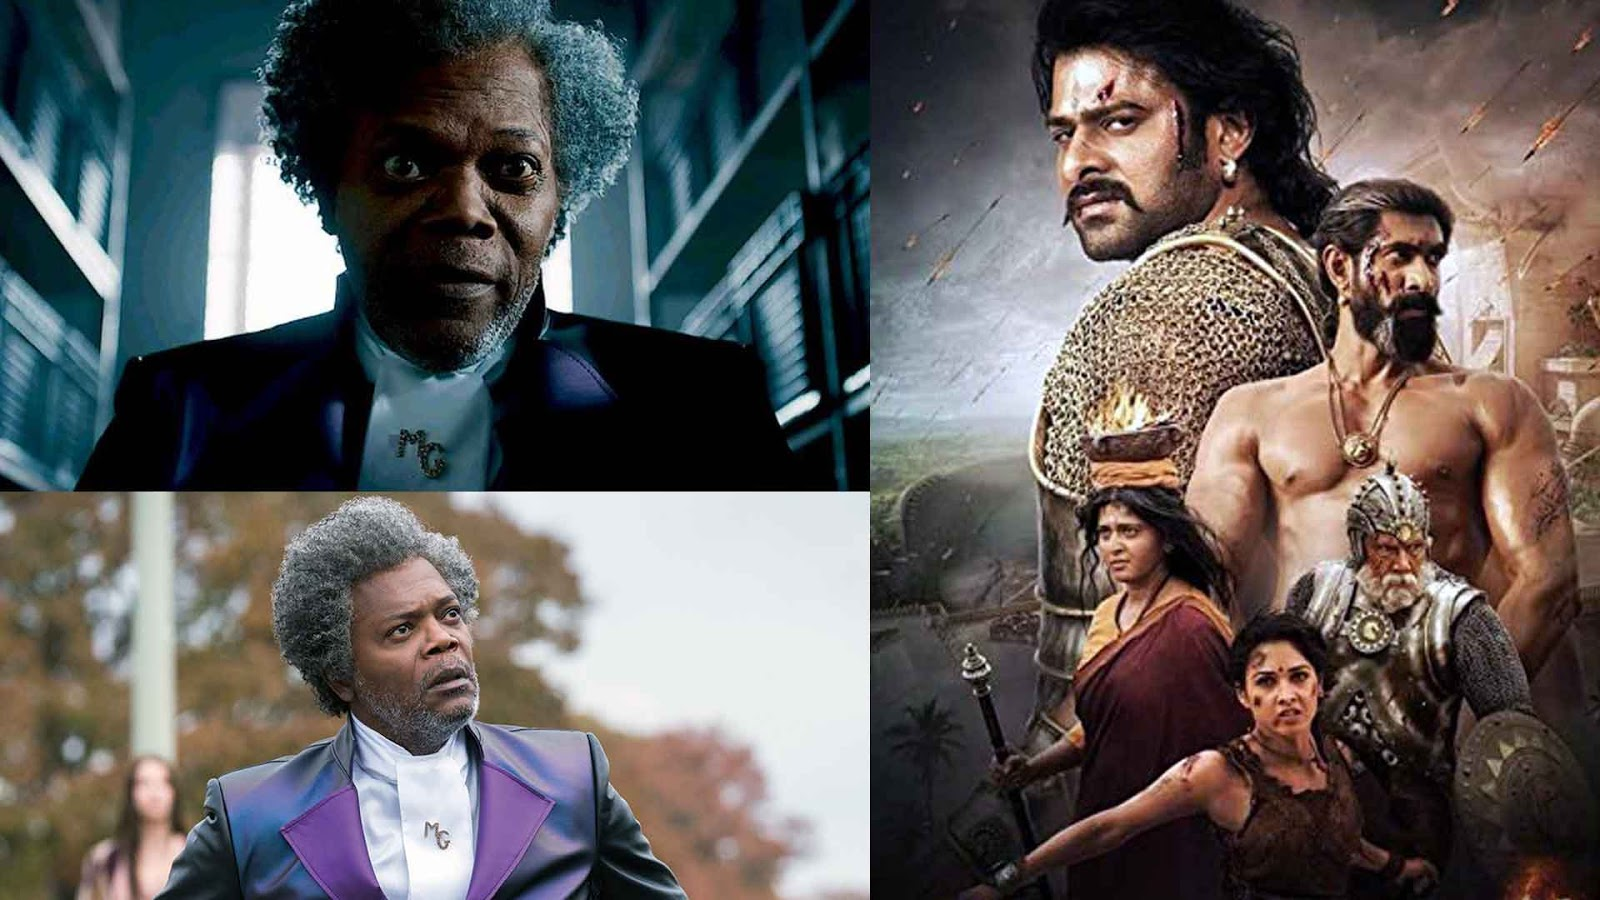 'Avengers' star Samuel L Jackson expresses his desire to venture into Bollywood and feature in 'Baahubali 3'